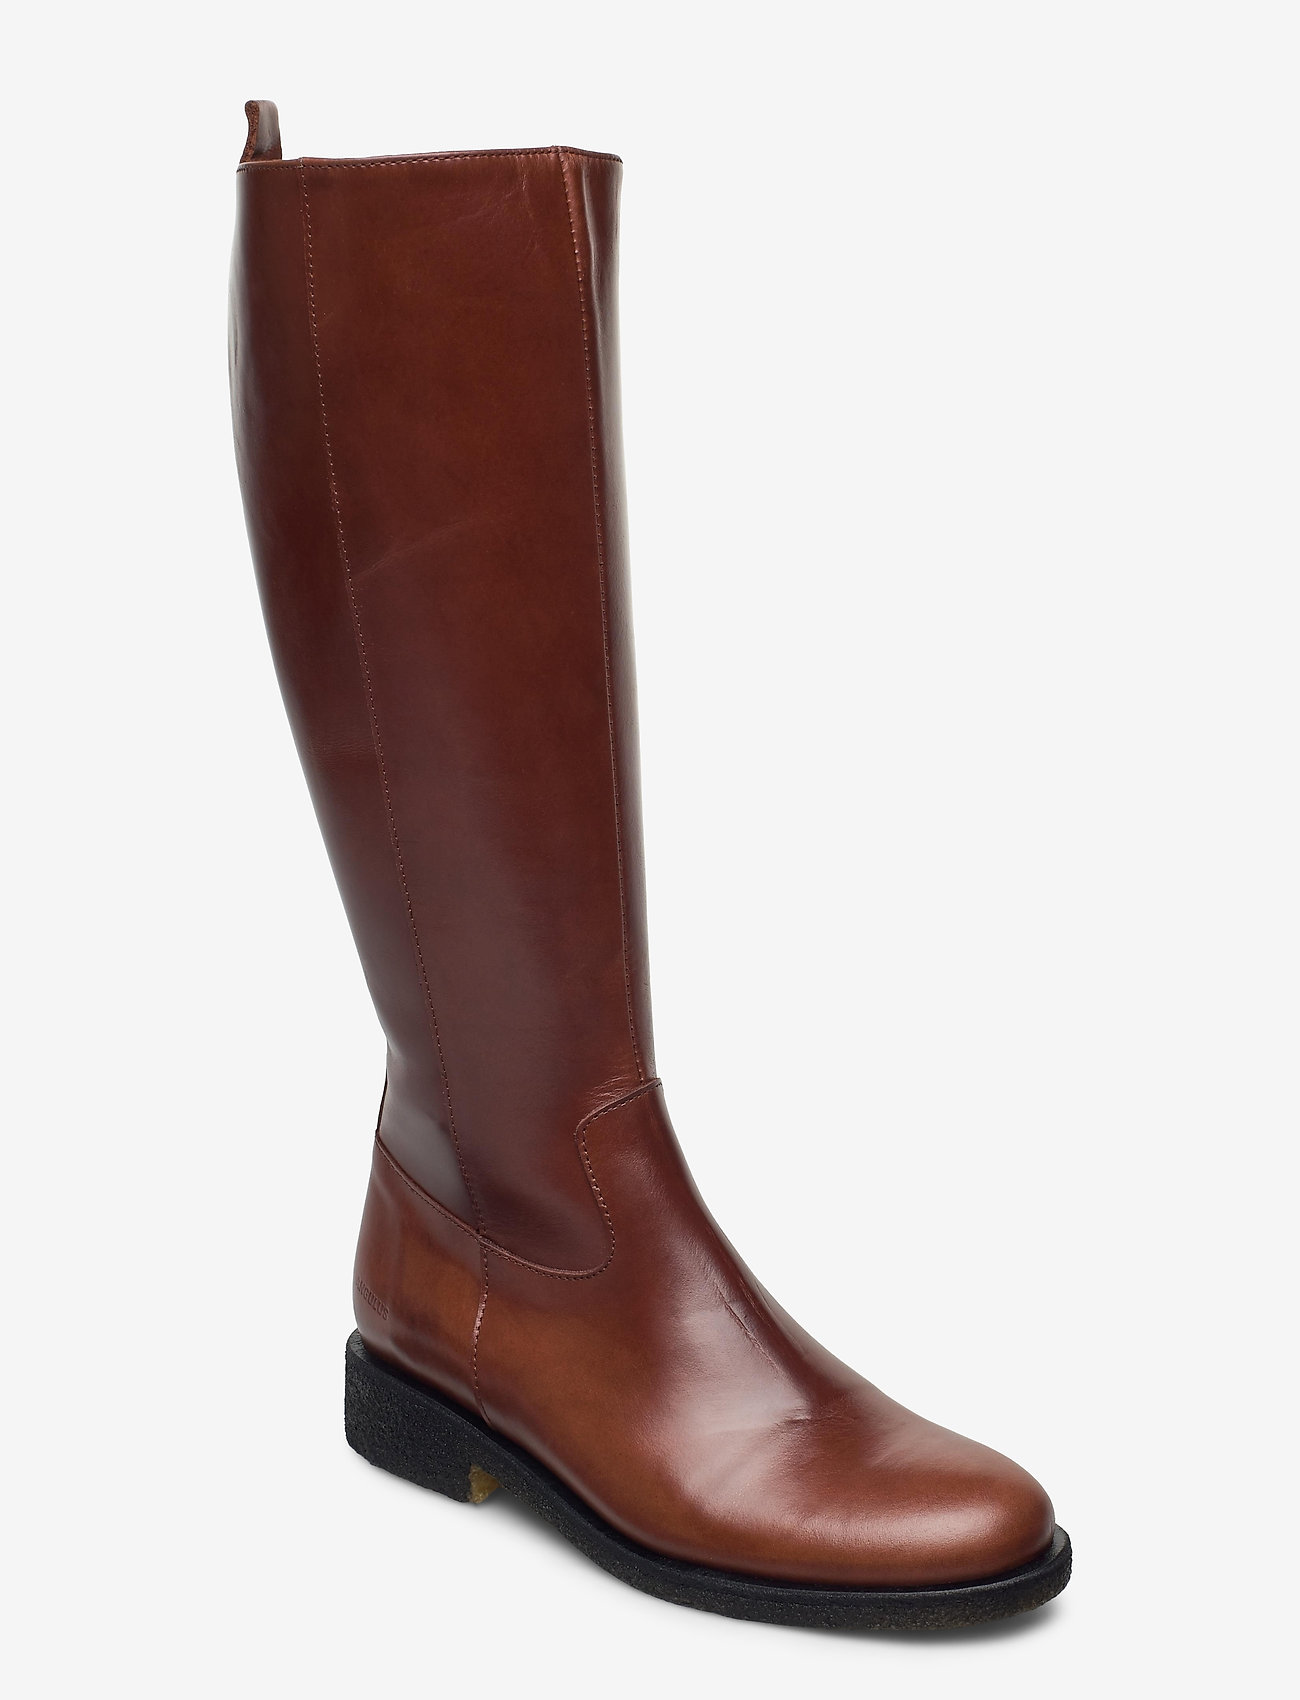 ANGULUS - Long boot - höga stövlar - 1837/002 brown/dark brown - 0